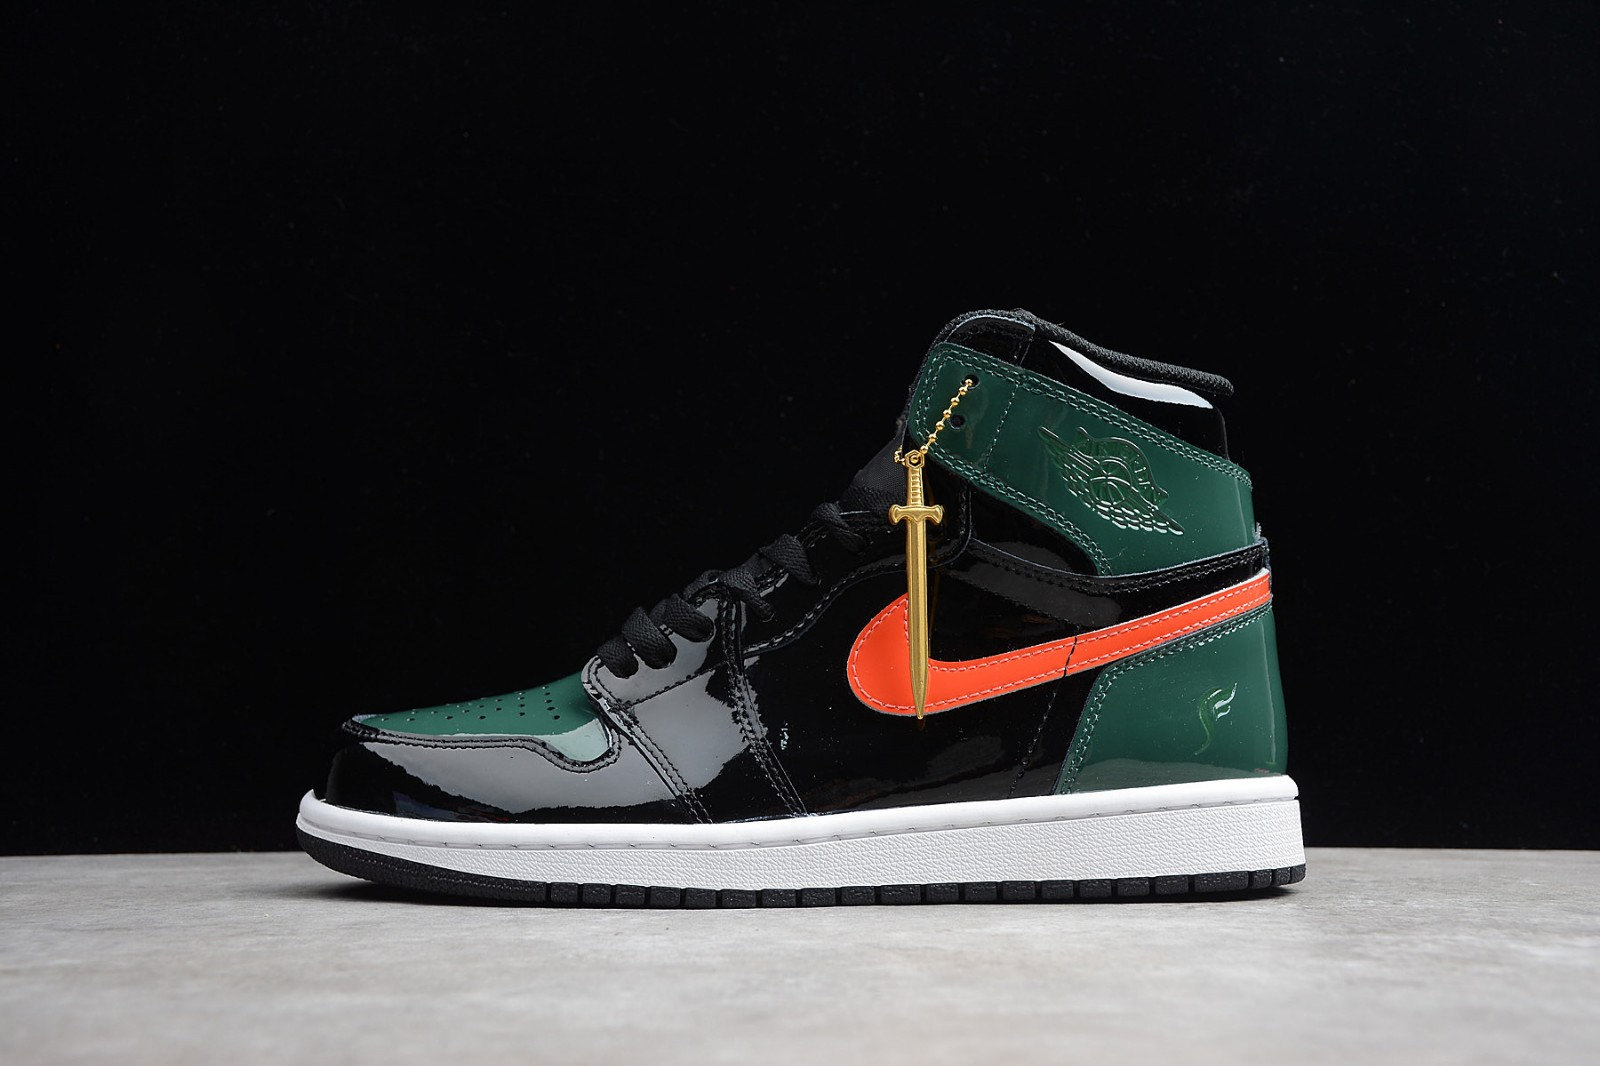 85501b6e609f04 Nike Air Jordan 1 High OG Solefly Friends   Family AV3905-038 - Febbuy